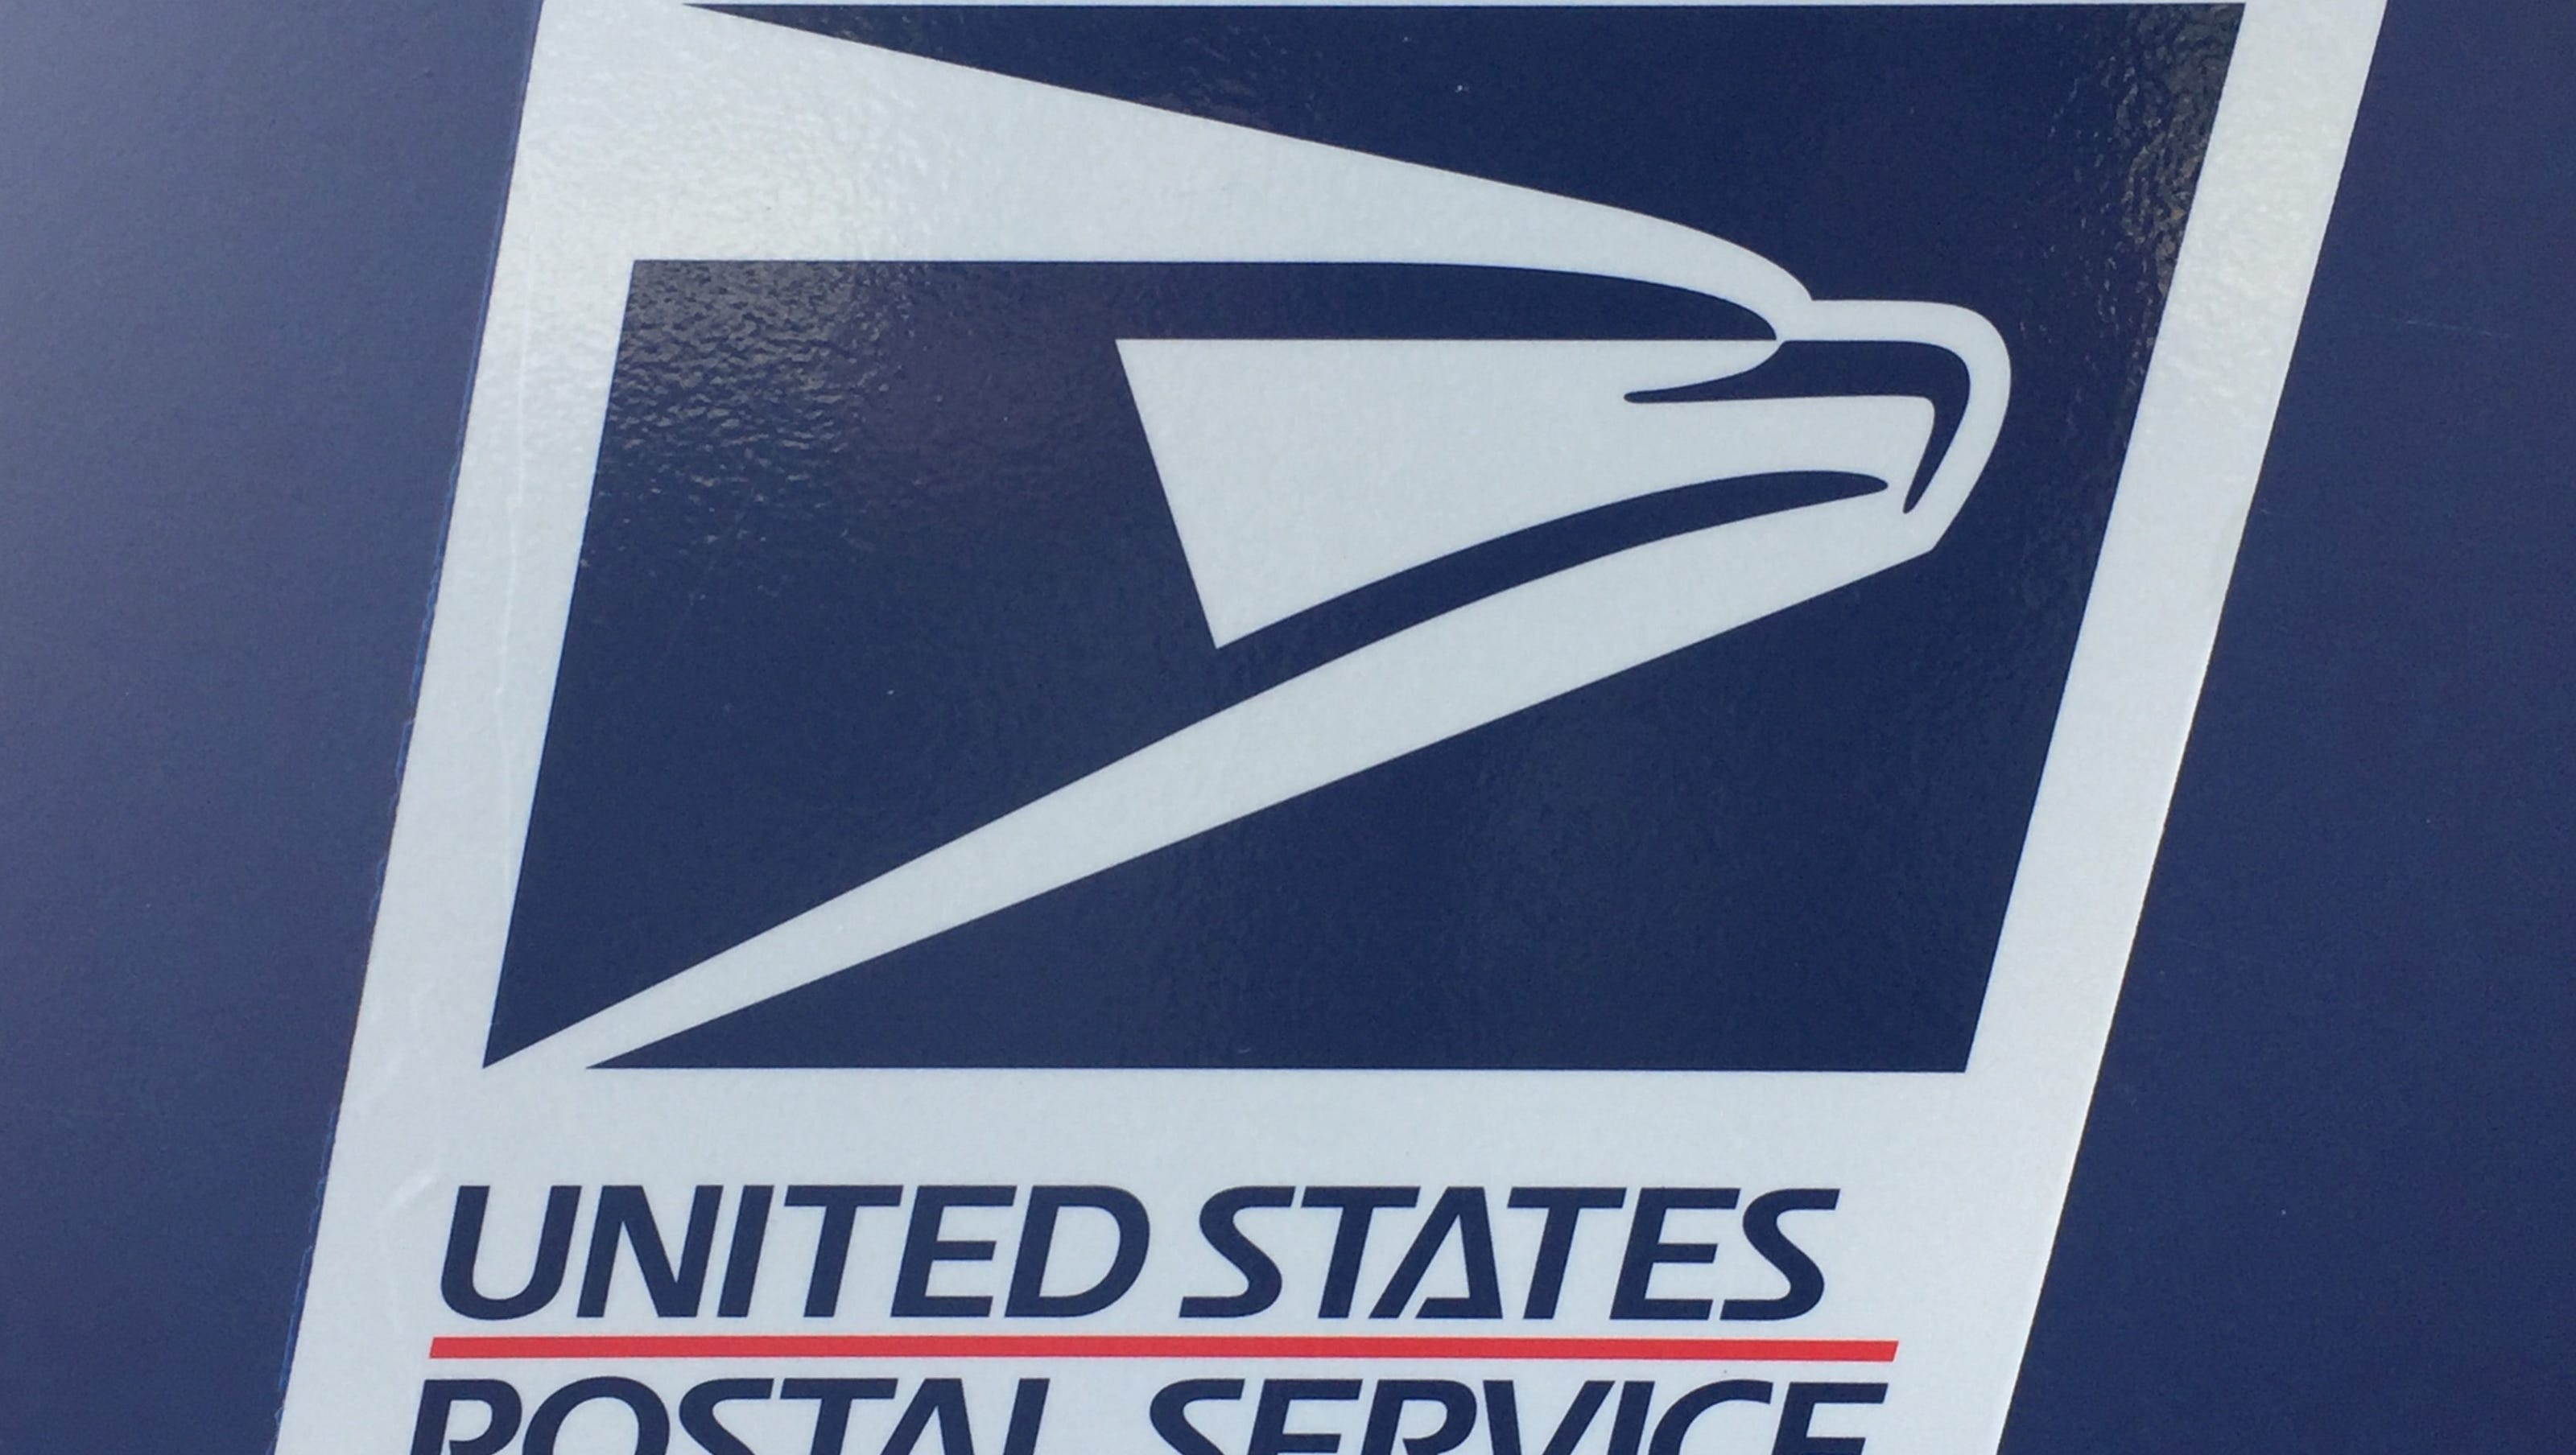 Postal worker quits, boxes of mail found on side of road